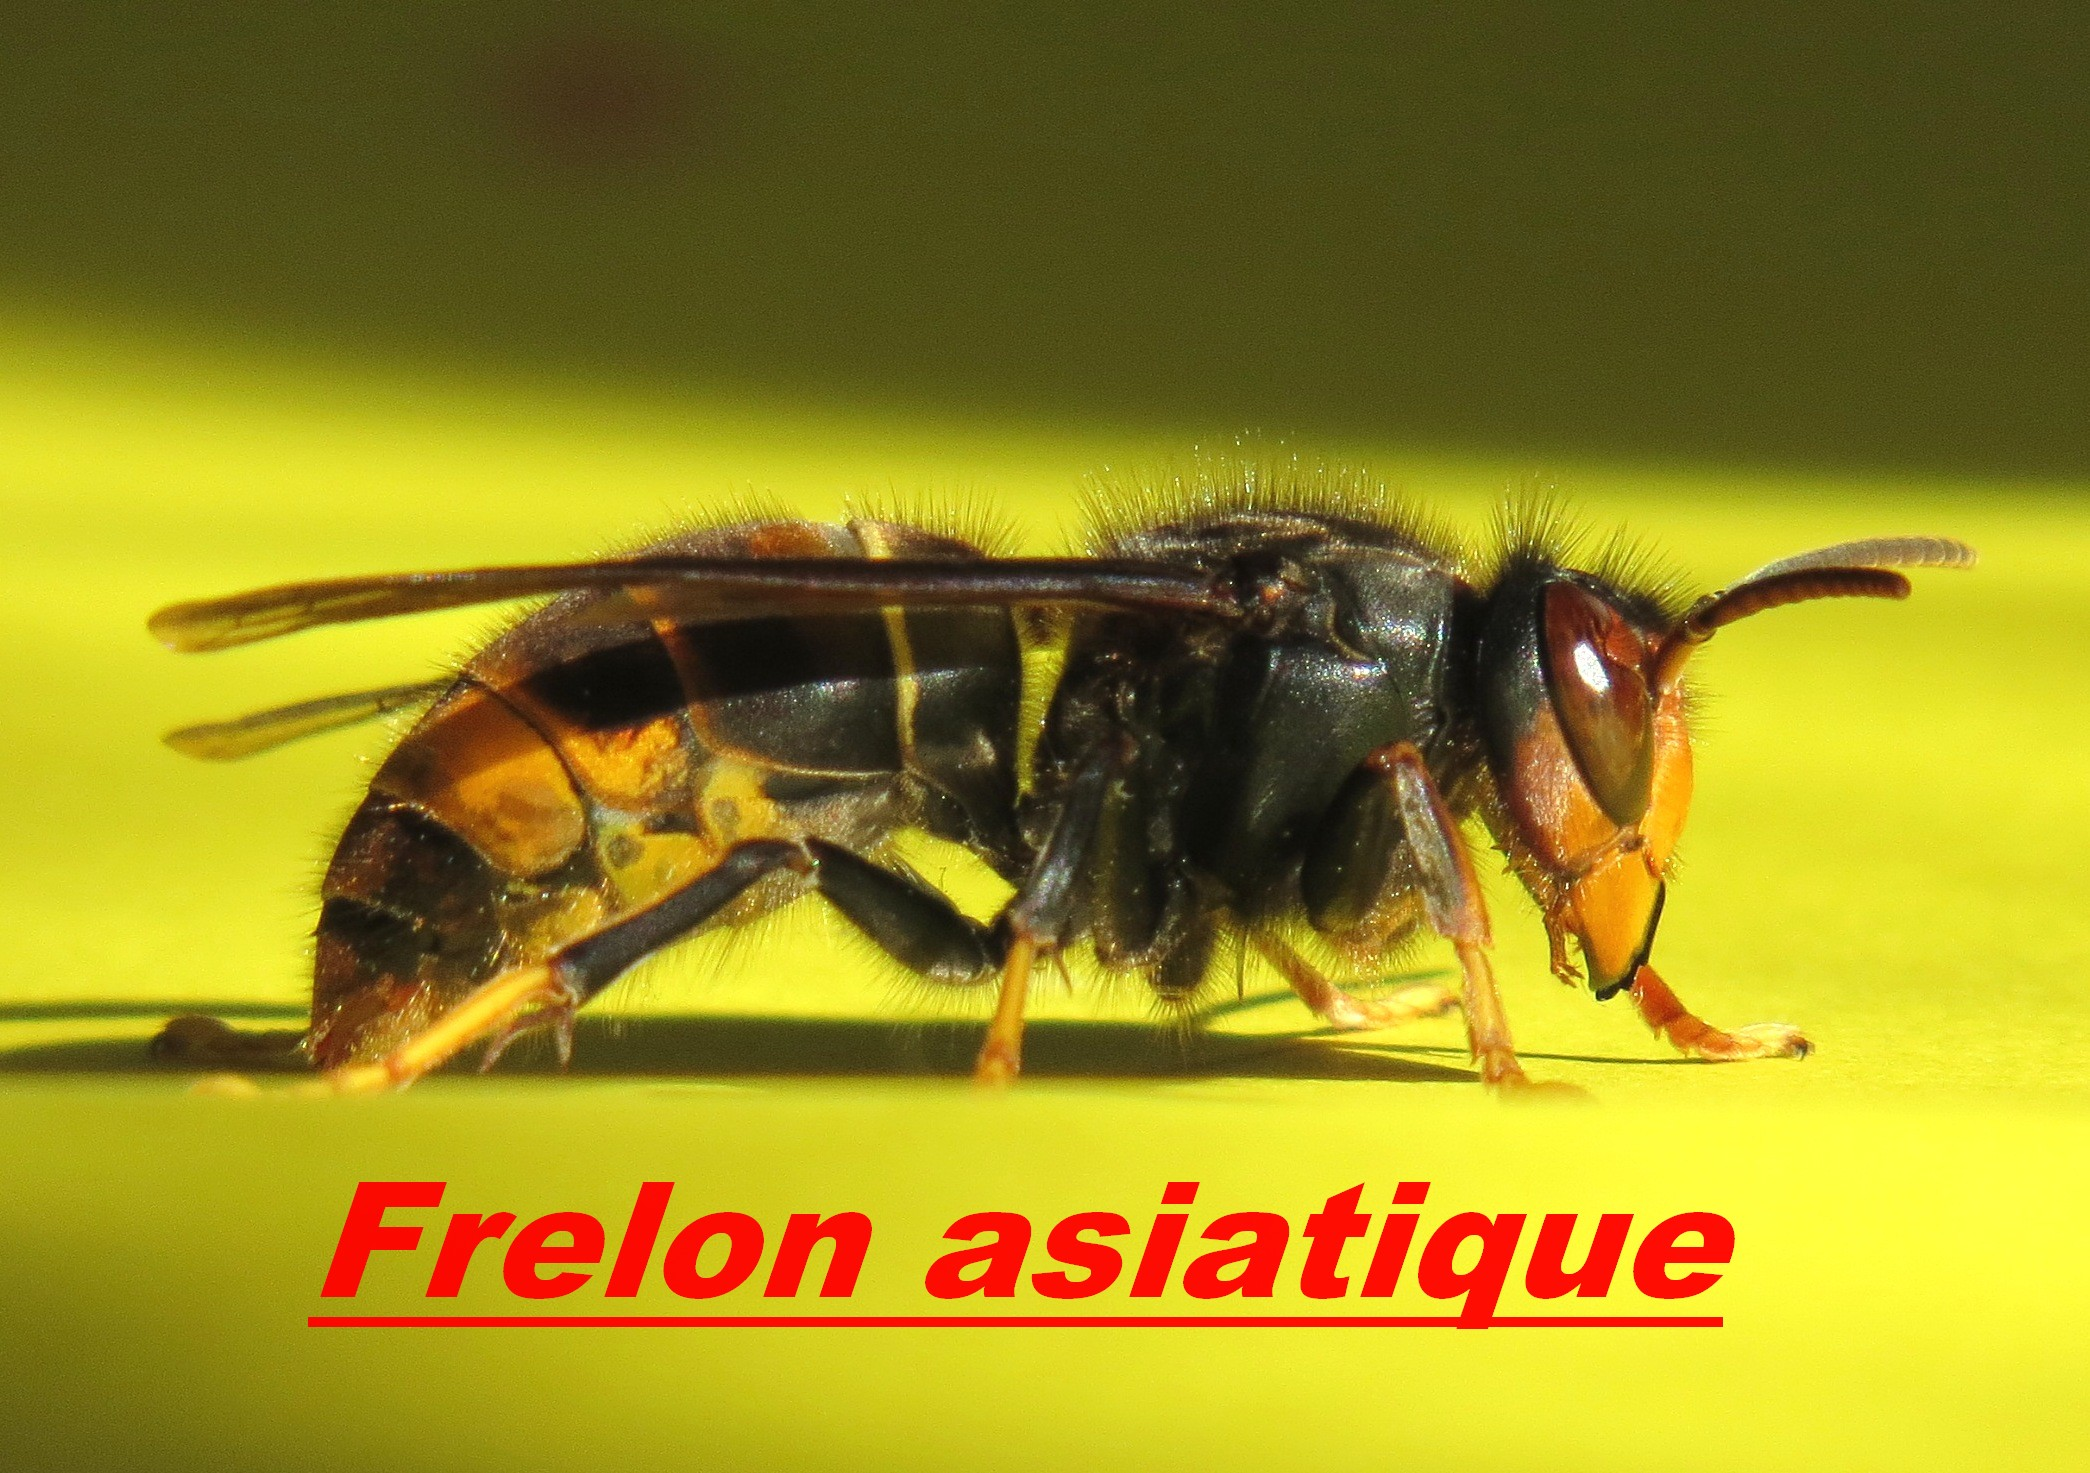 frelon asiatique Matignon